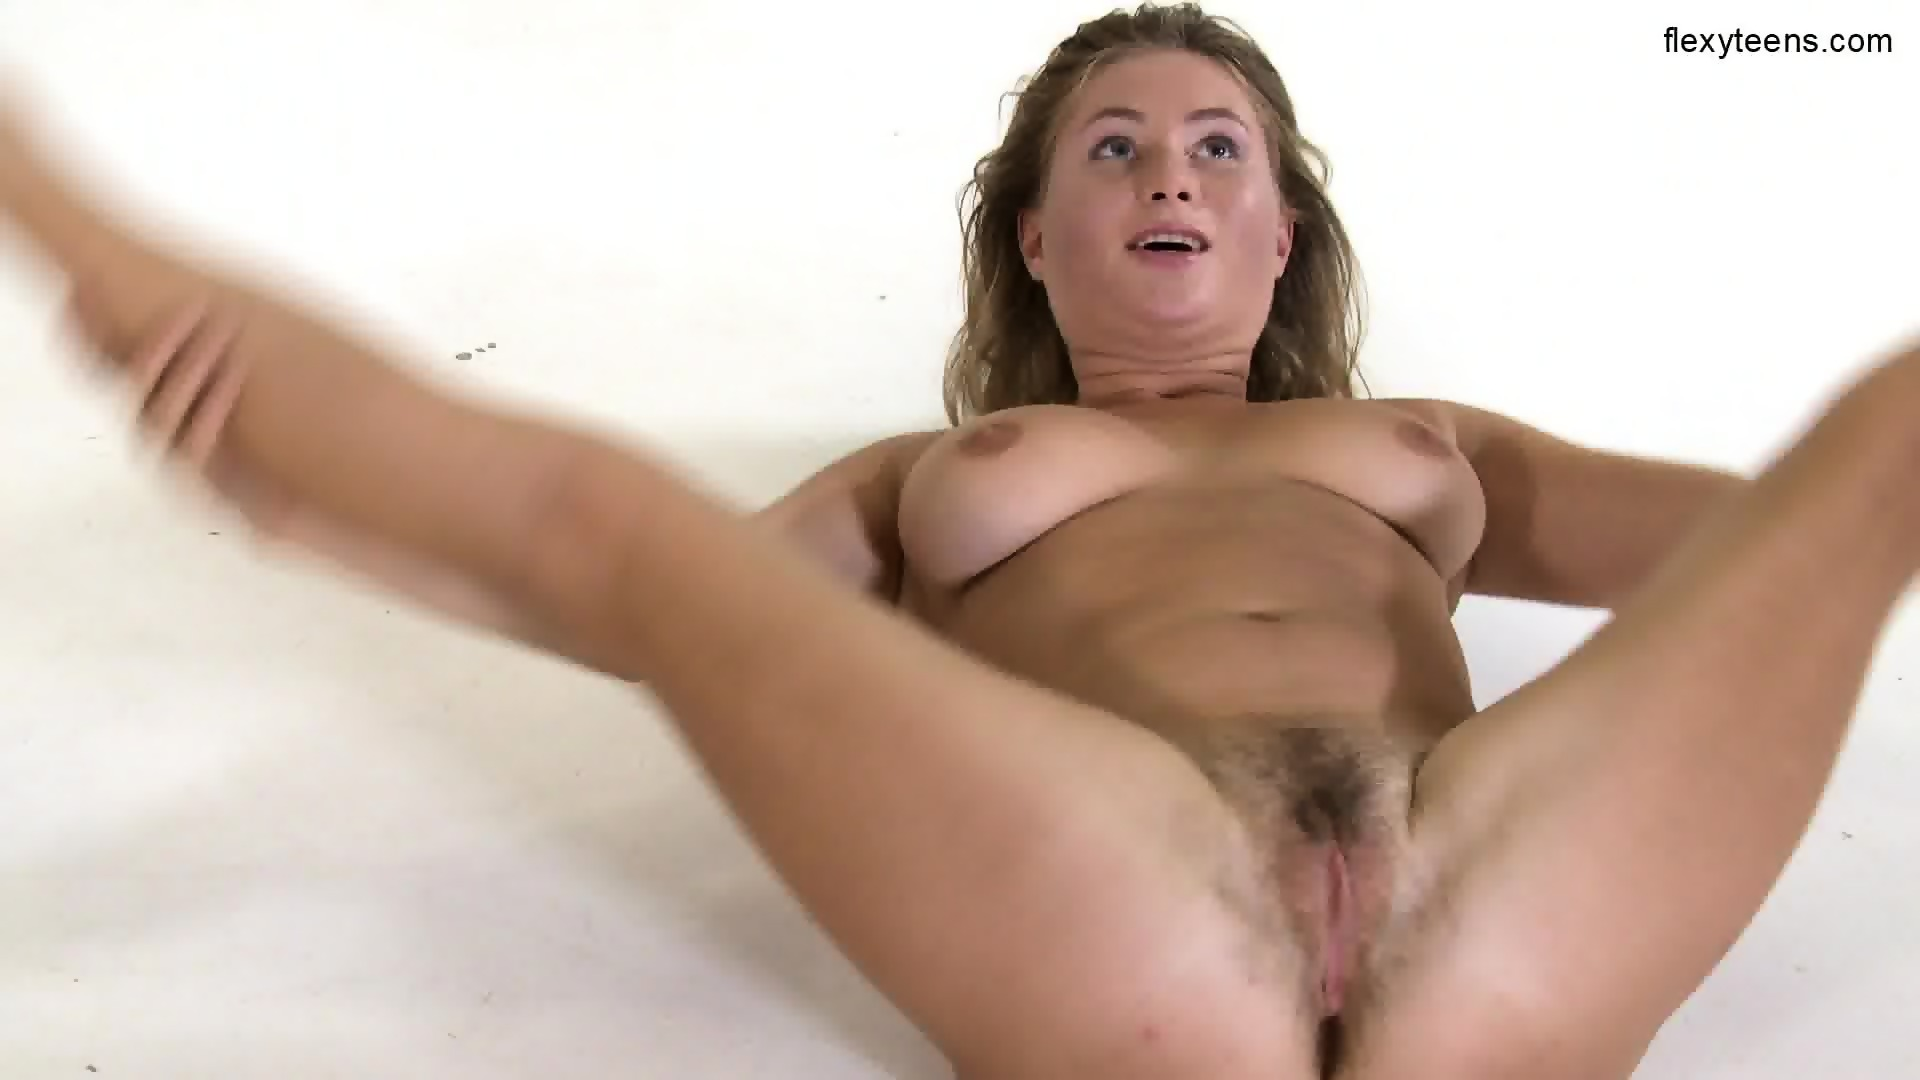 The Naked Gymnast - scene 10